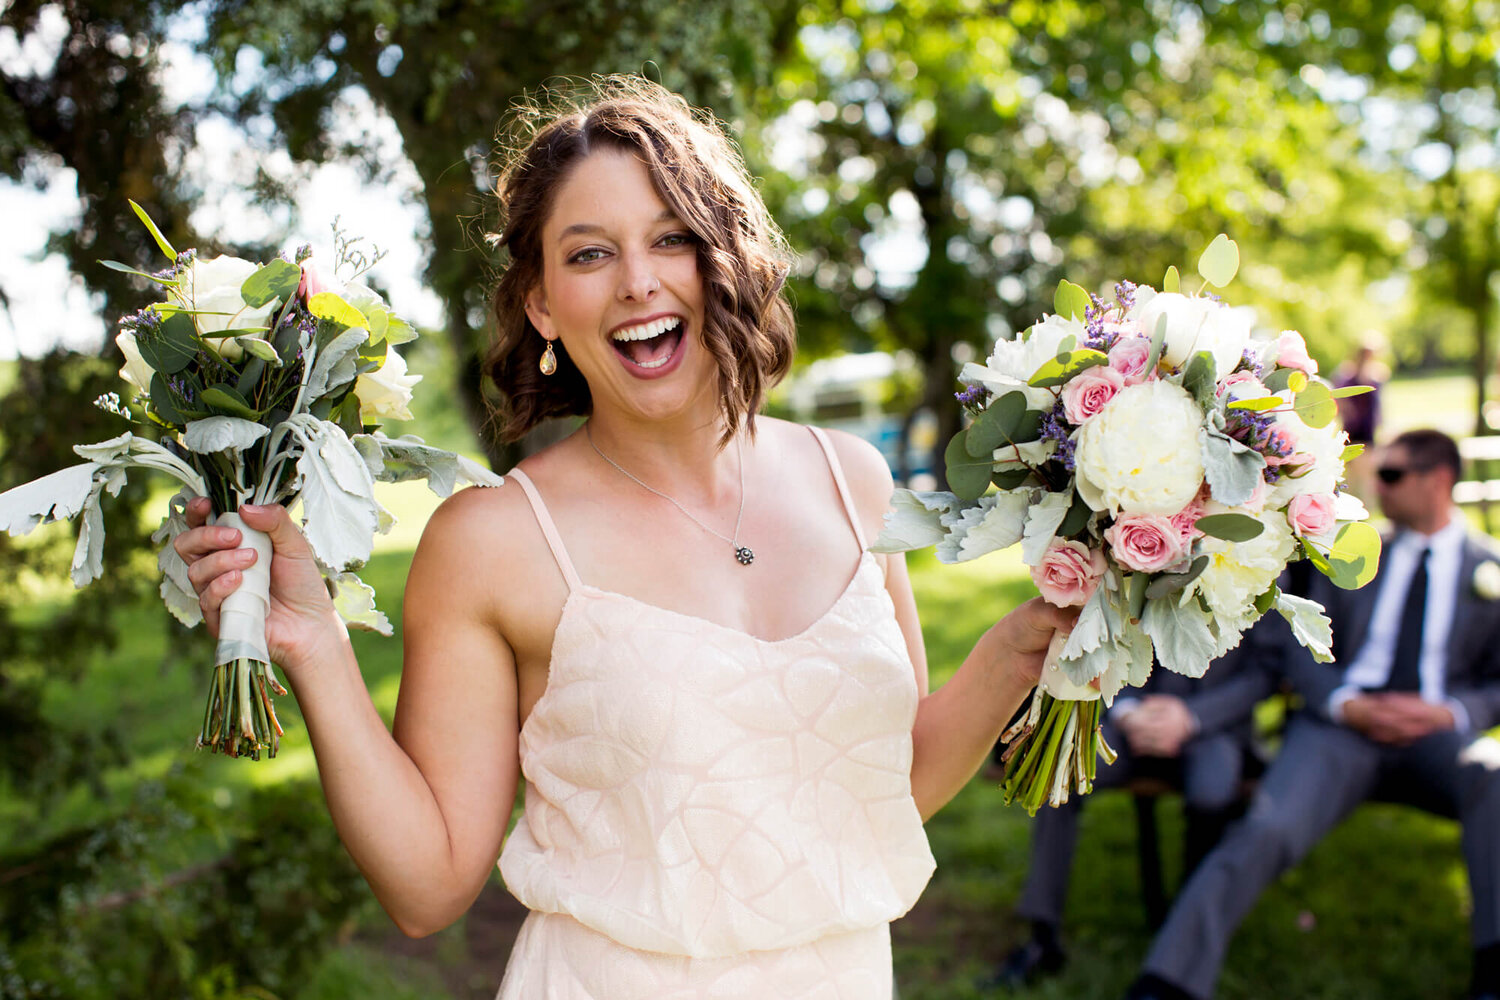 58-bridesmaid-flowers-pale-pink-dress-st-louis-wedding.jpg